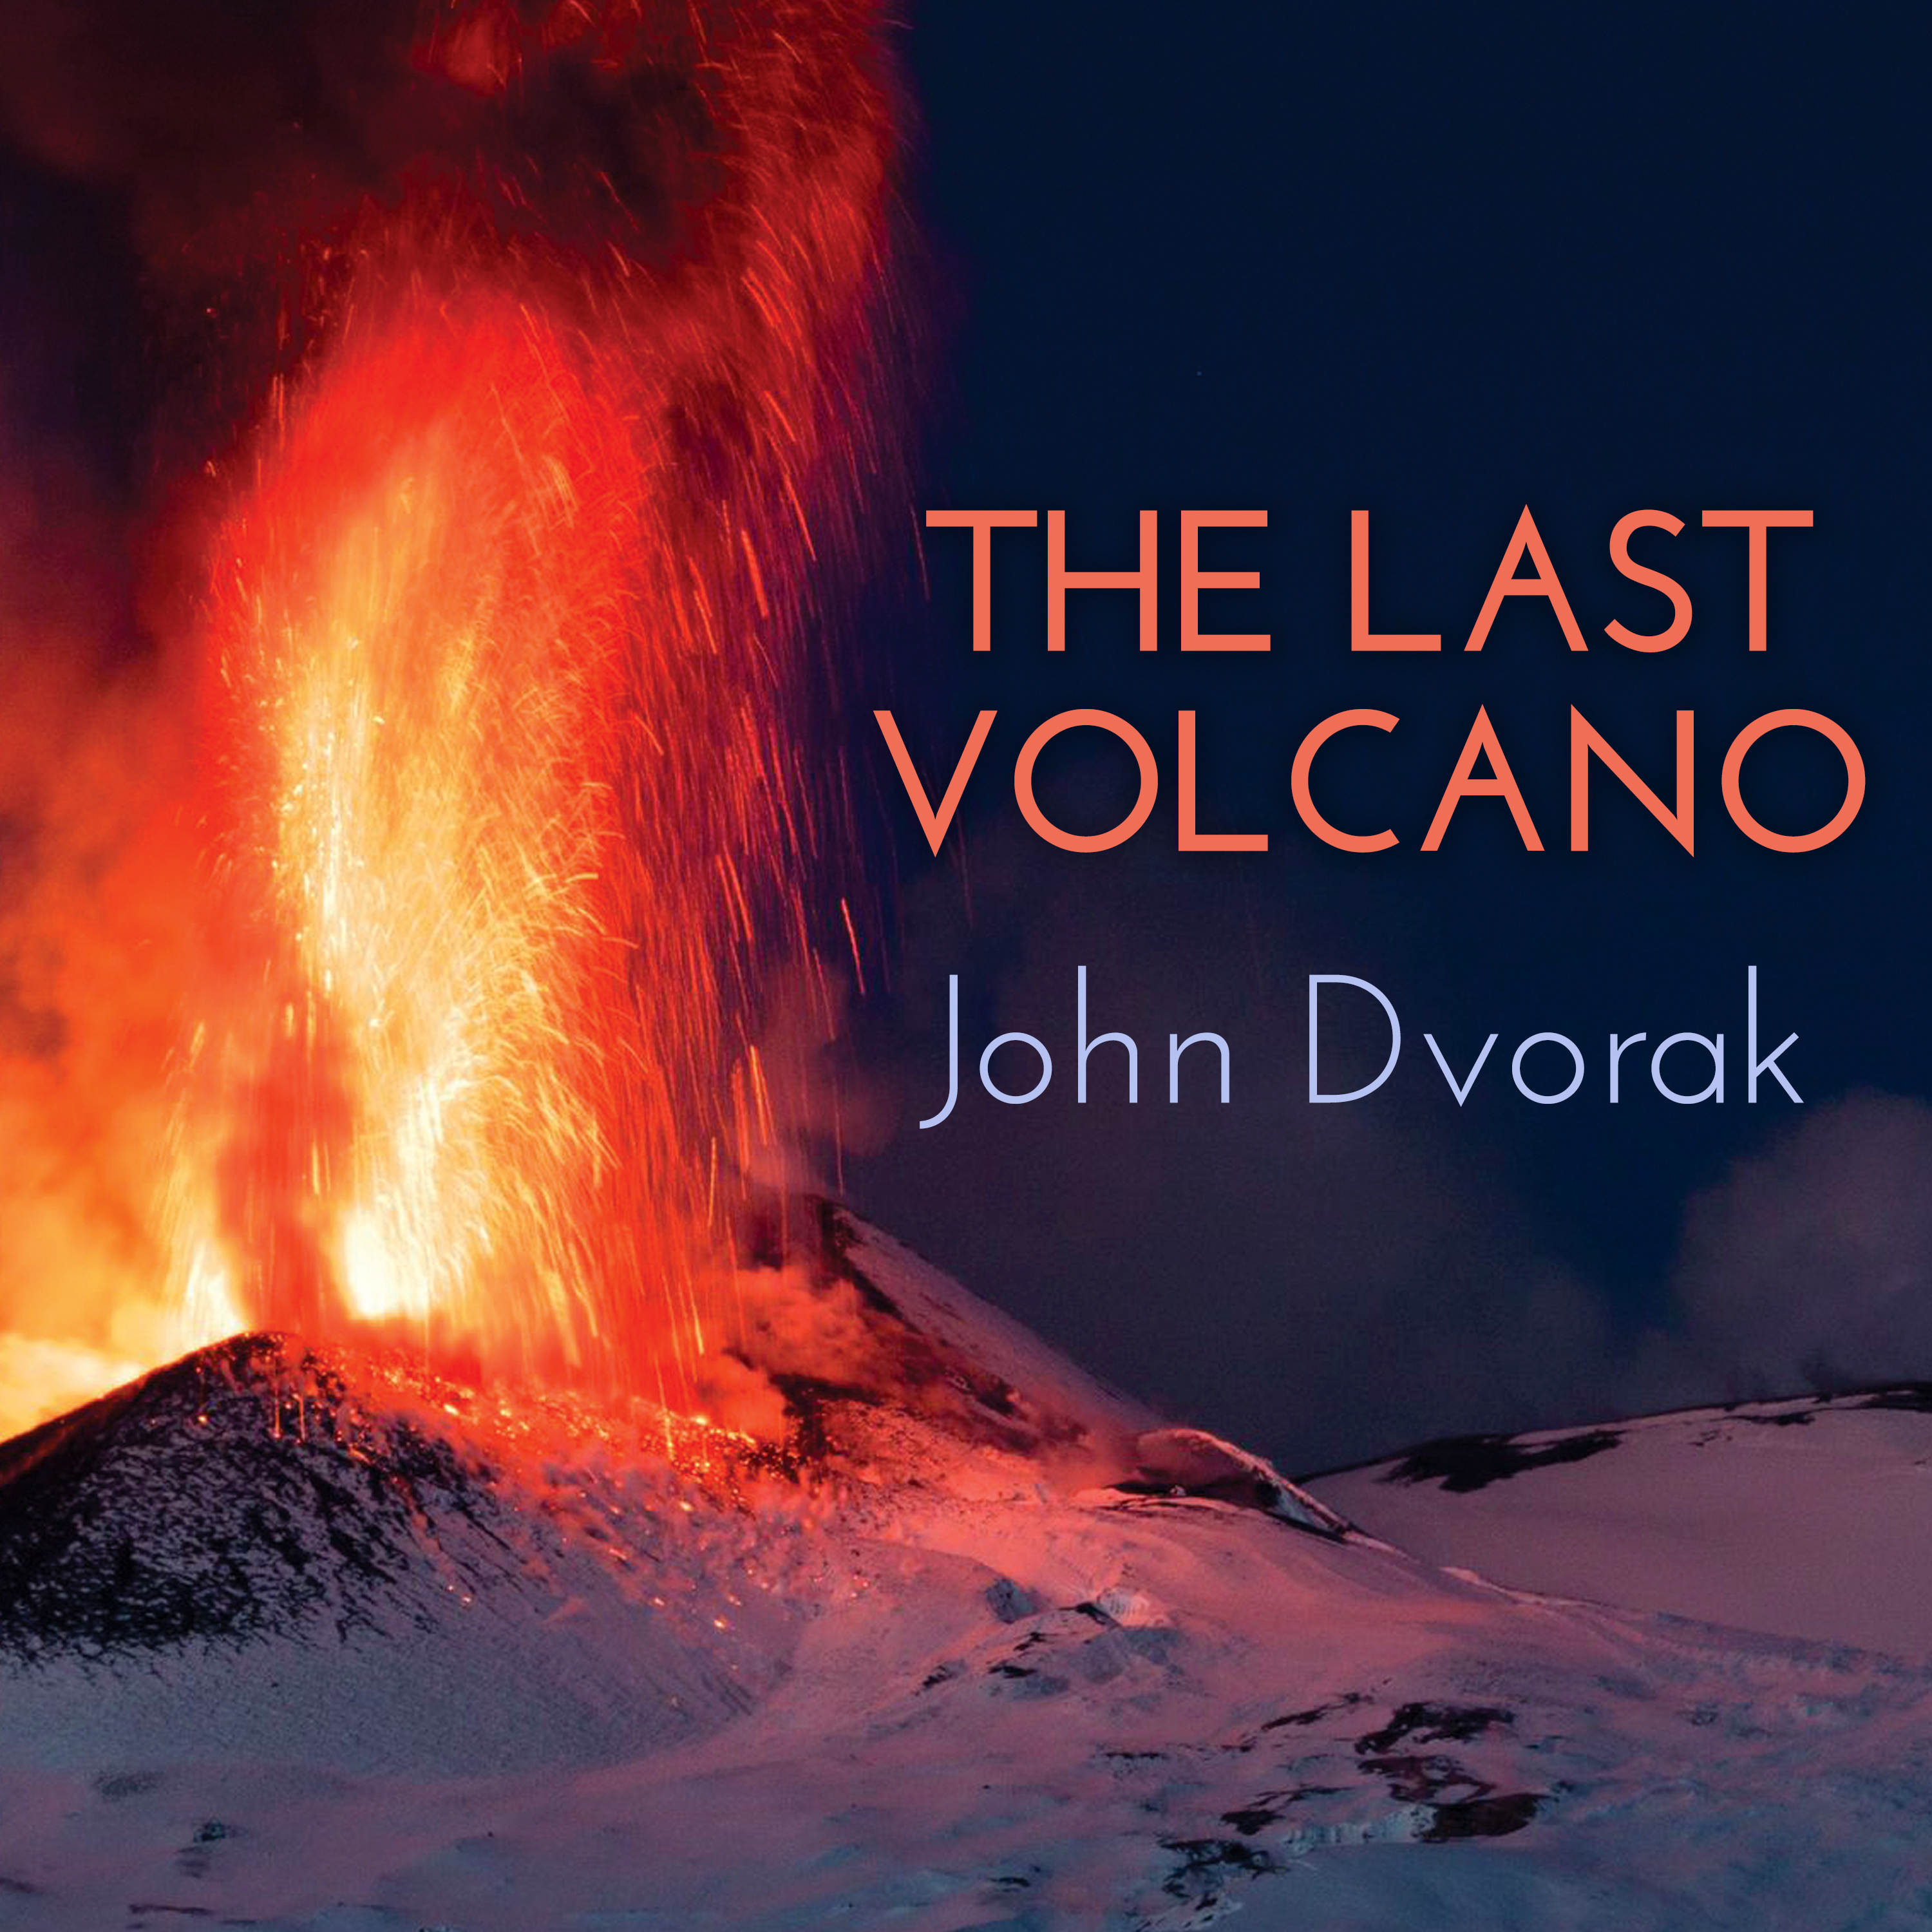 Printable The Last Volcano: A Man, a Romance, and the Quest to Understand Nature's Most Magnificant Fury Audiobook Cover Art